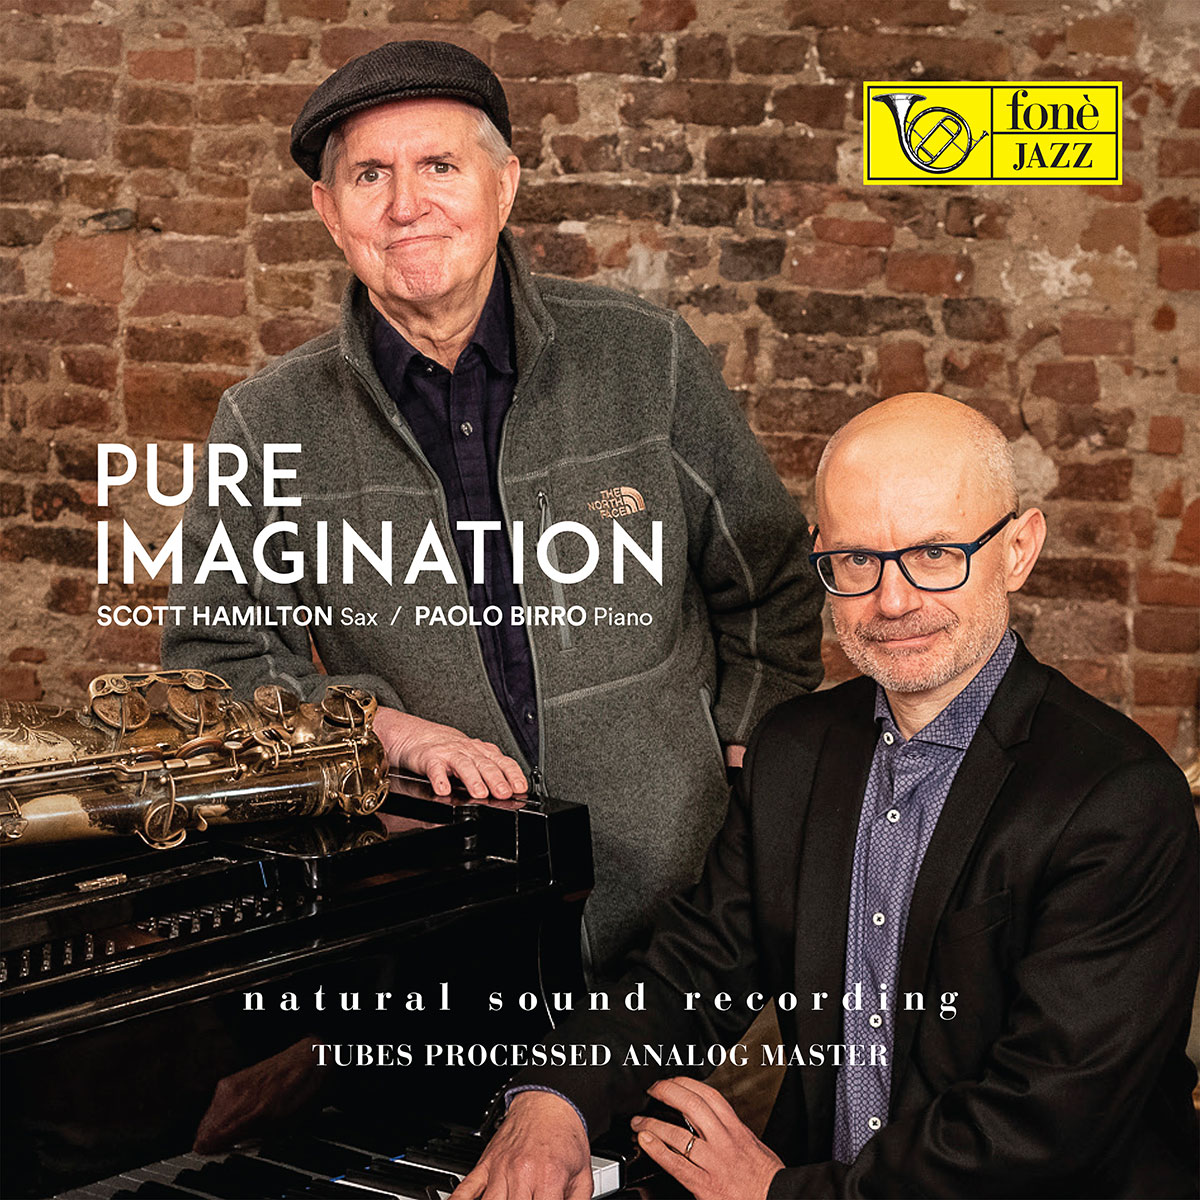 Pure Imaginaton (Natural Sound Recording)